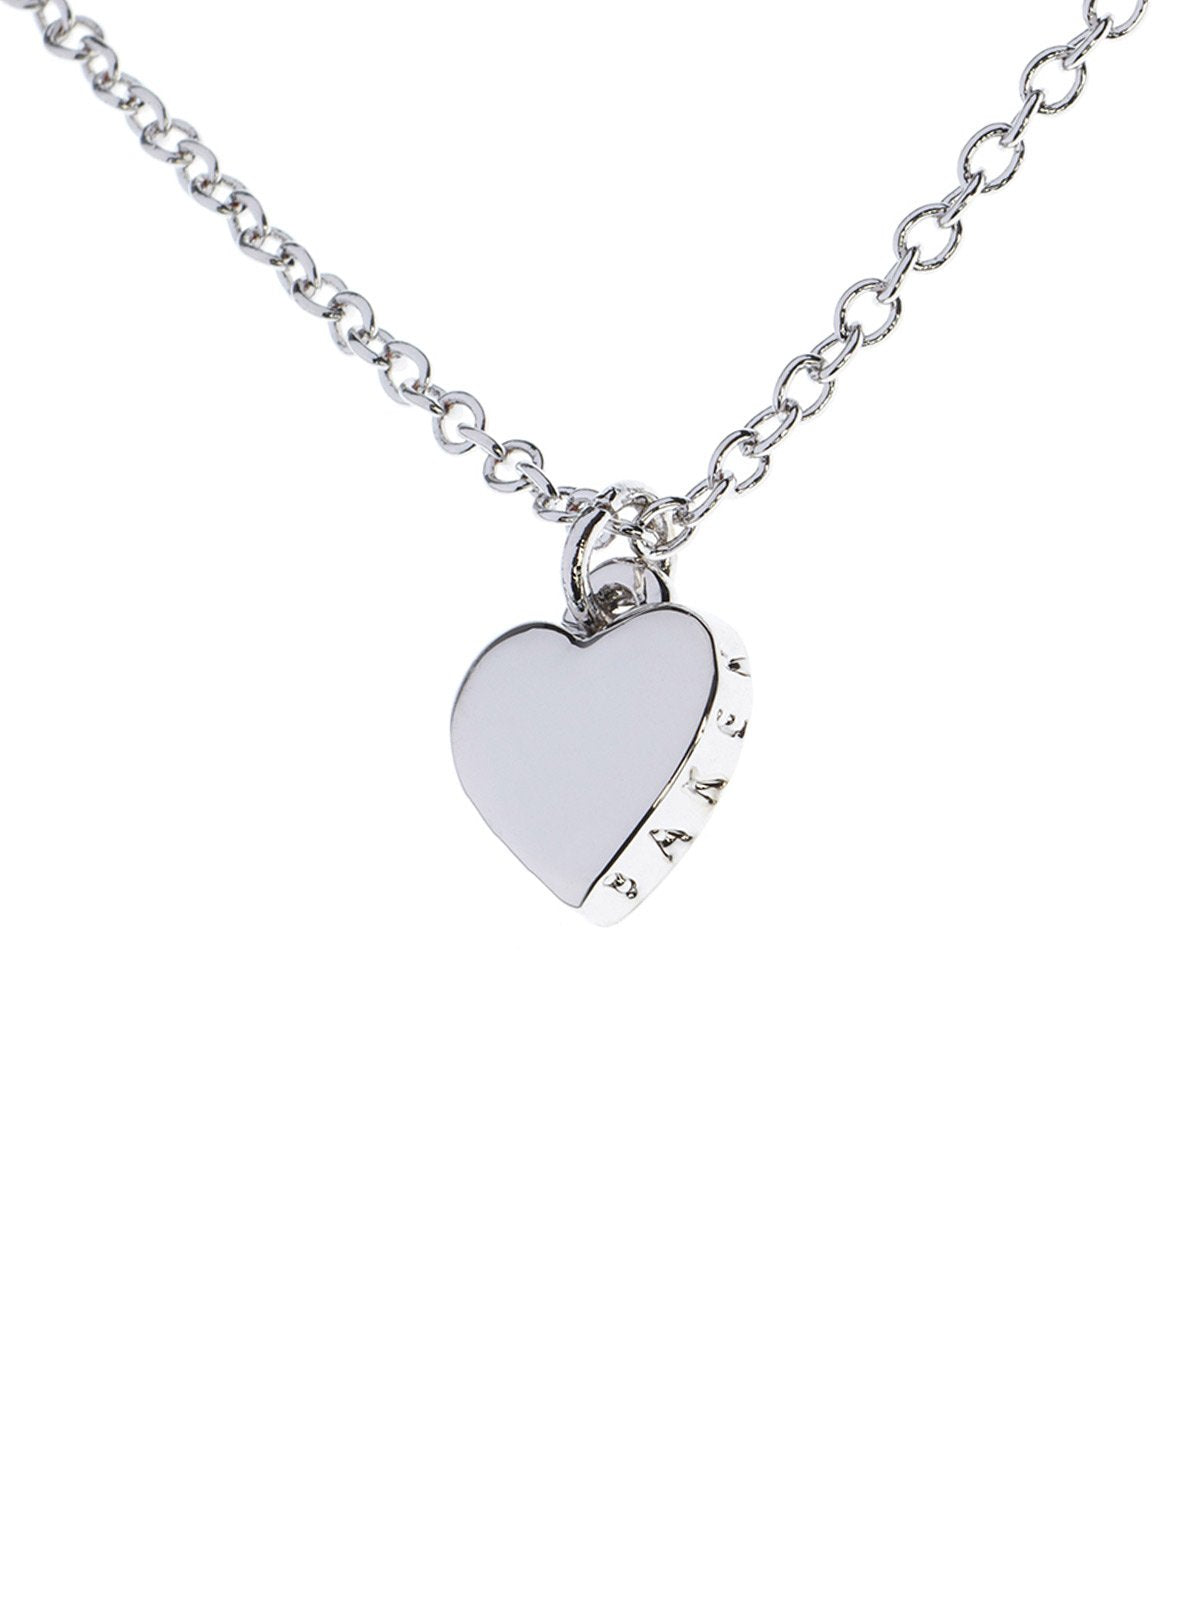 Yeltuor - TED BAKER - JEWELLERY - Ted Baker Heart Pendant Necklace -  -